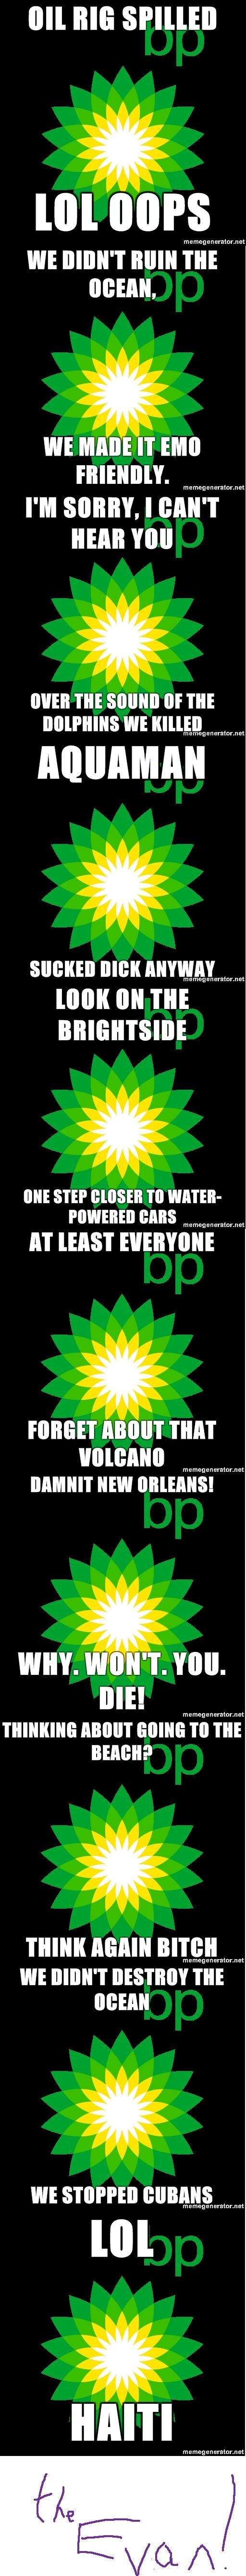 "BP meme. not really a meme, just something i made<br /> <a href=""pictures/492462/Some+paradoxes+to+make+you+think/"" target=blank>funnyjunk"